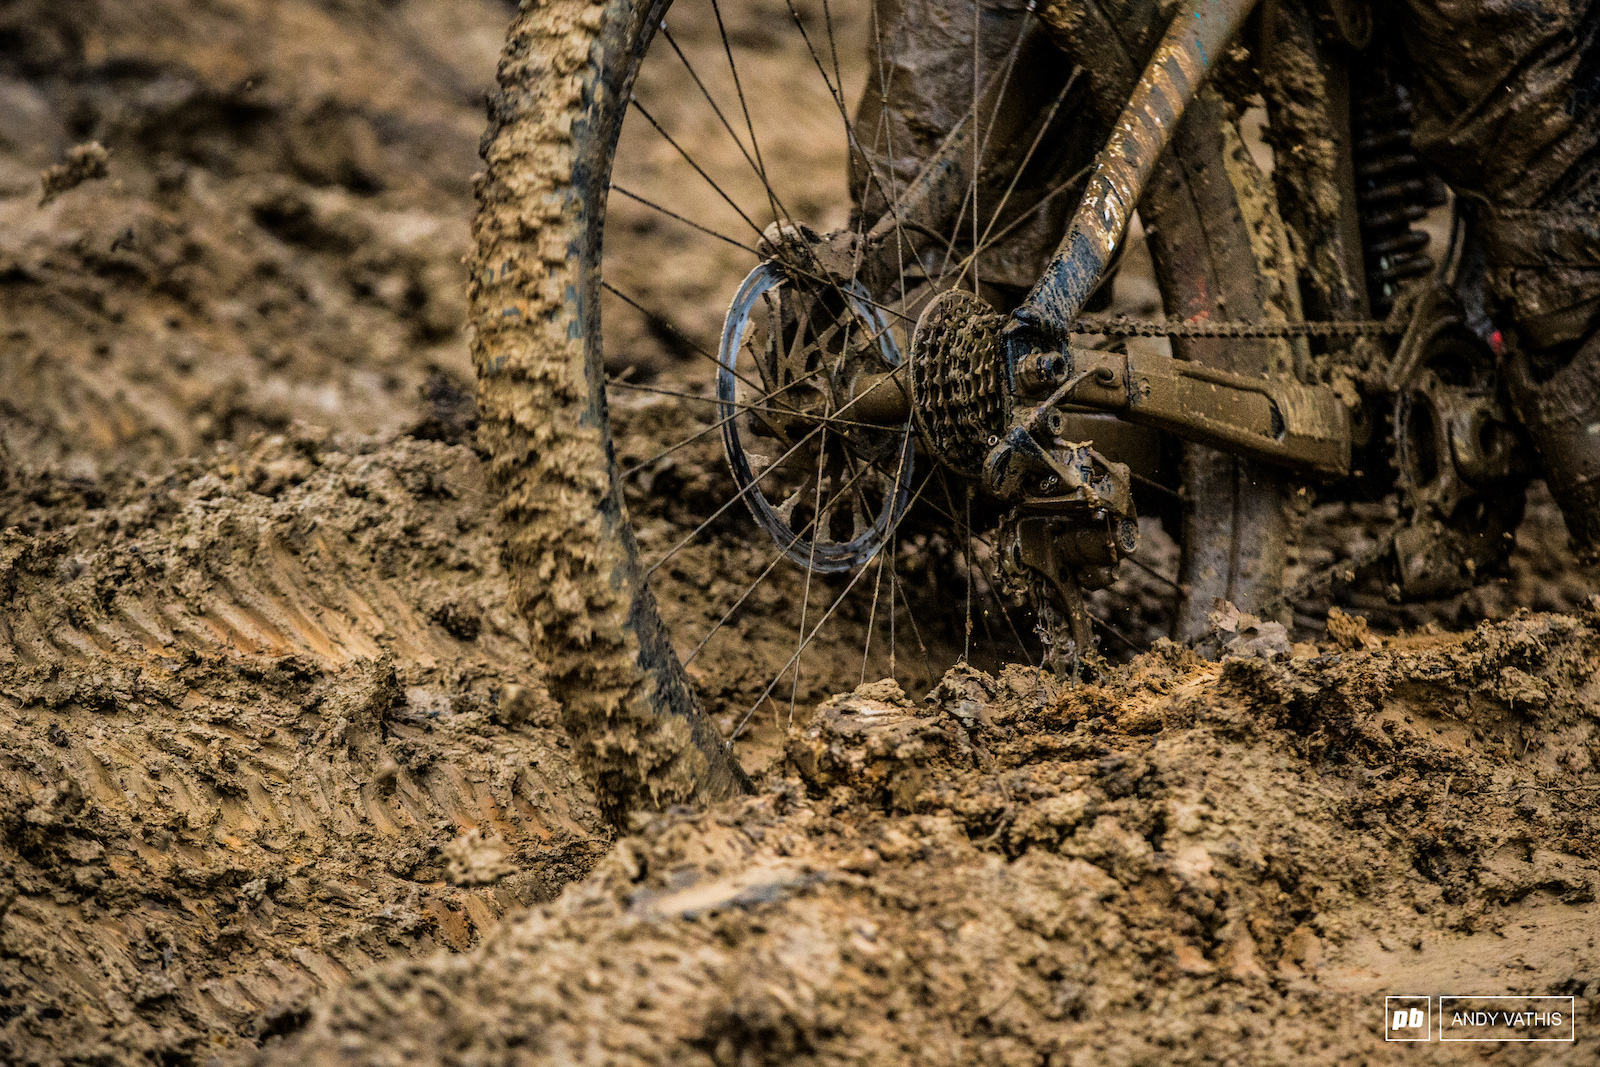 Derailleur deep ruts were becoming a problem as practice wore on.